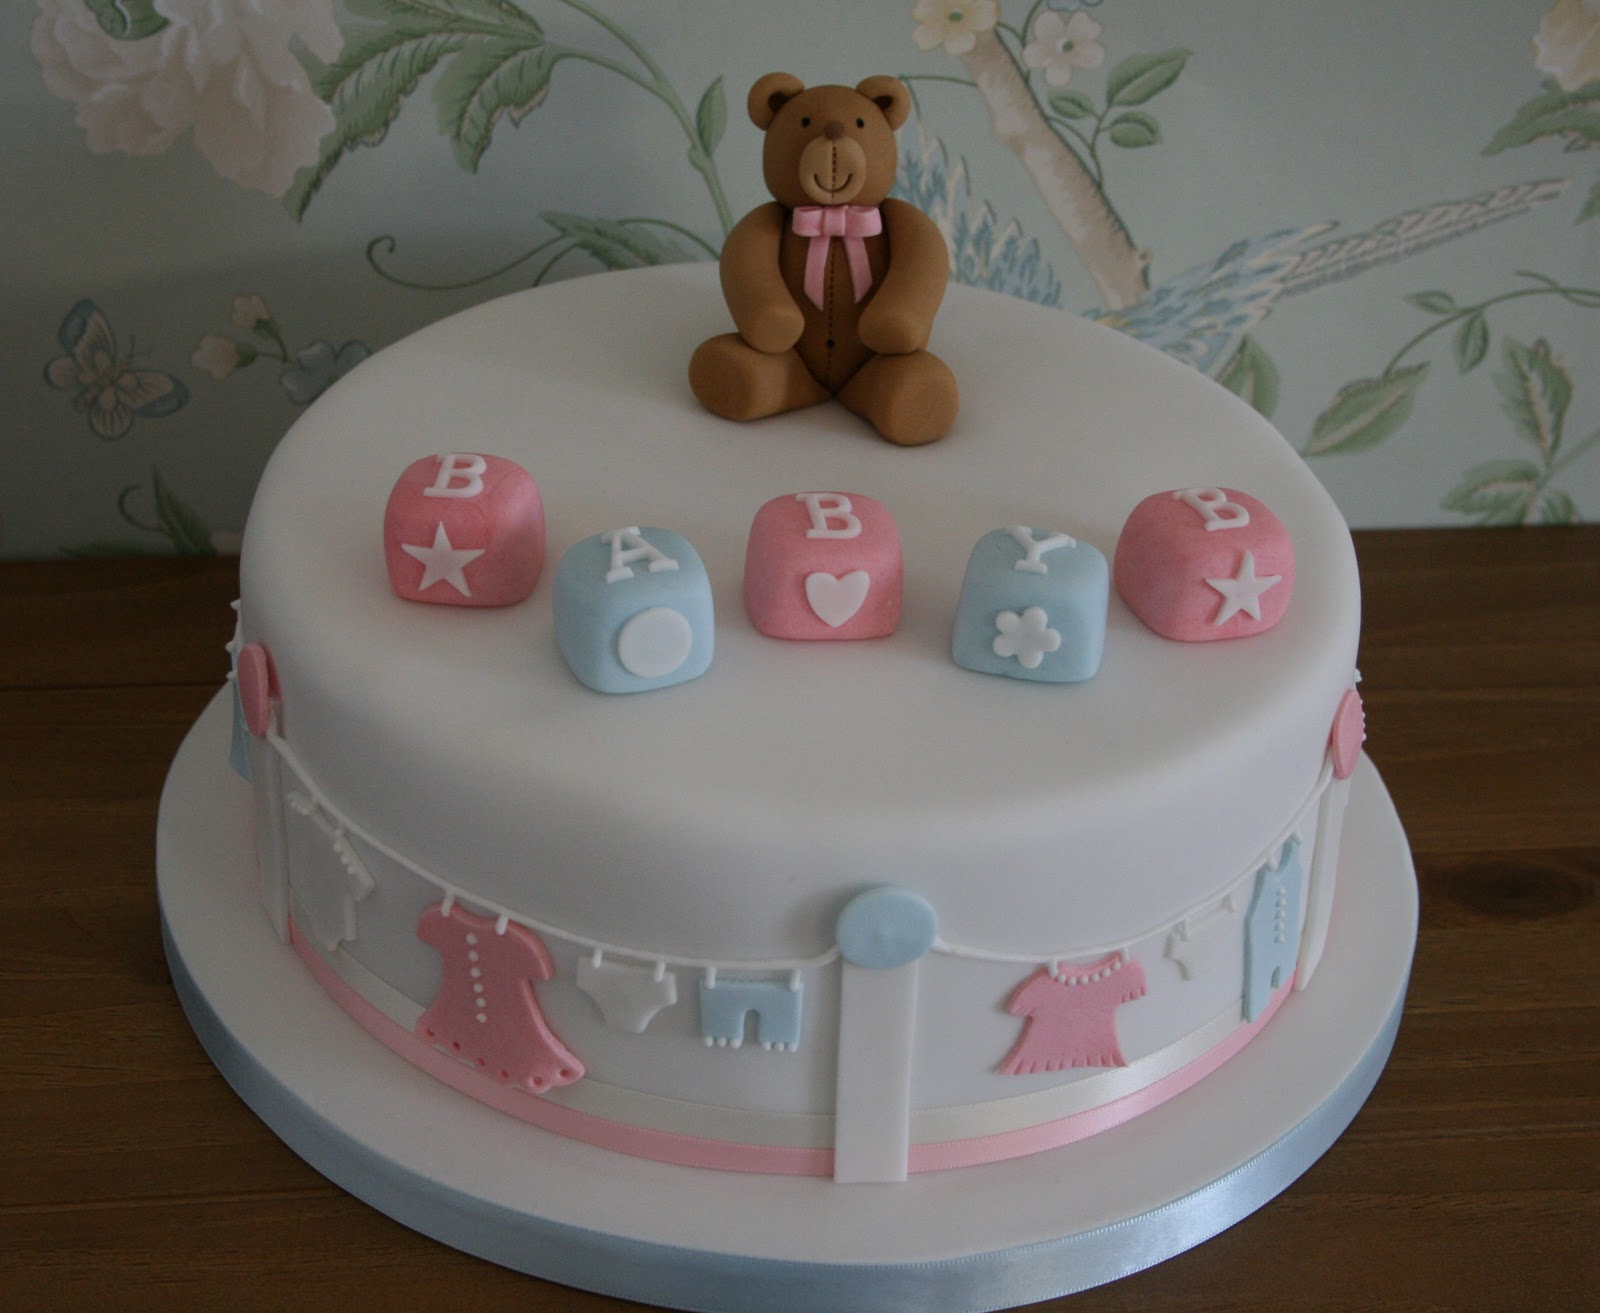 Cake Decorating Ideas Baby Shower : 70 Baby Shower Cakes and Cupcakes Ideas